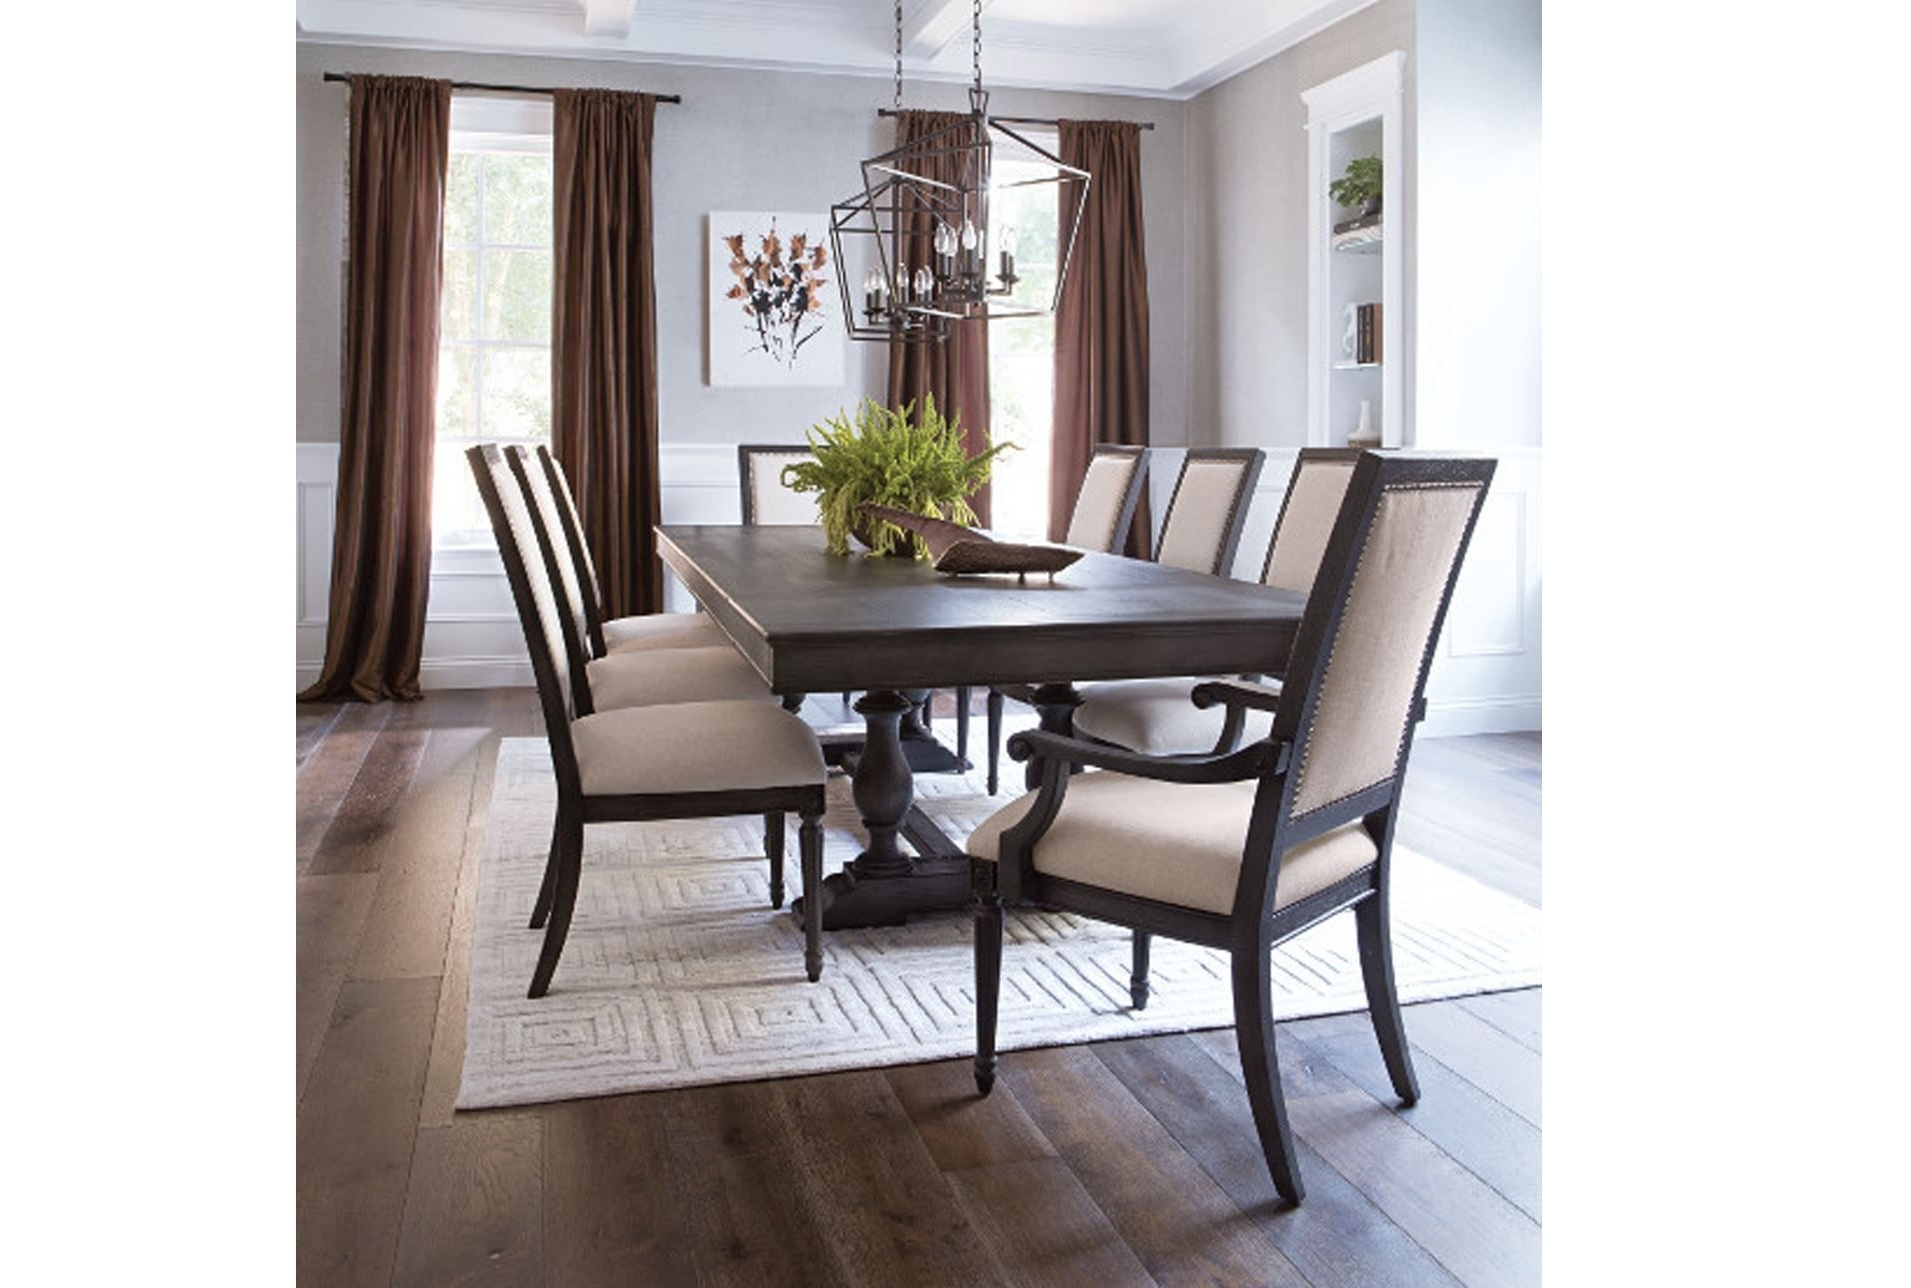 Chapleau Ii 7 Piece Extension Dining Table Sets Pertaining To Fashionable Chapleau 9 Piece Extension Dining Set, Off White (View 4 of 25)